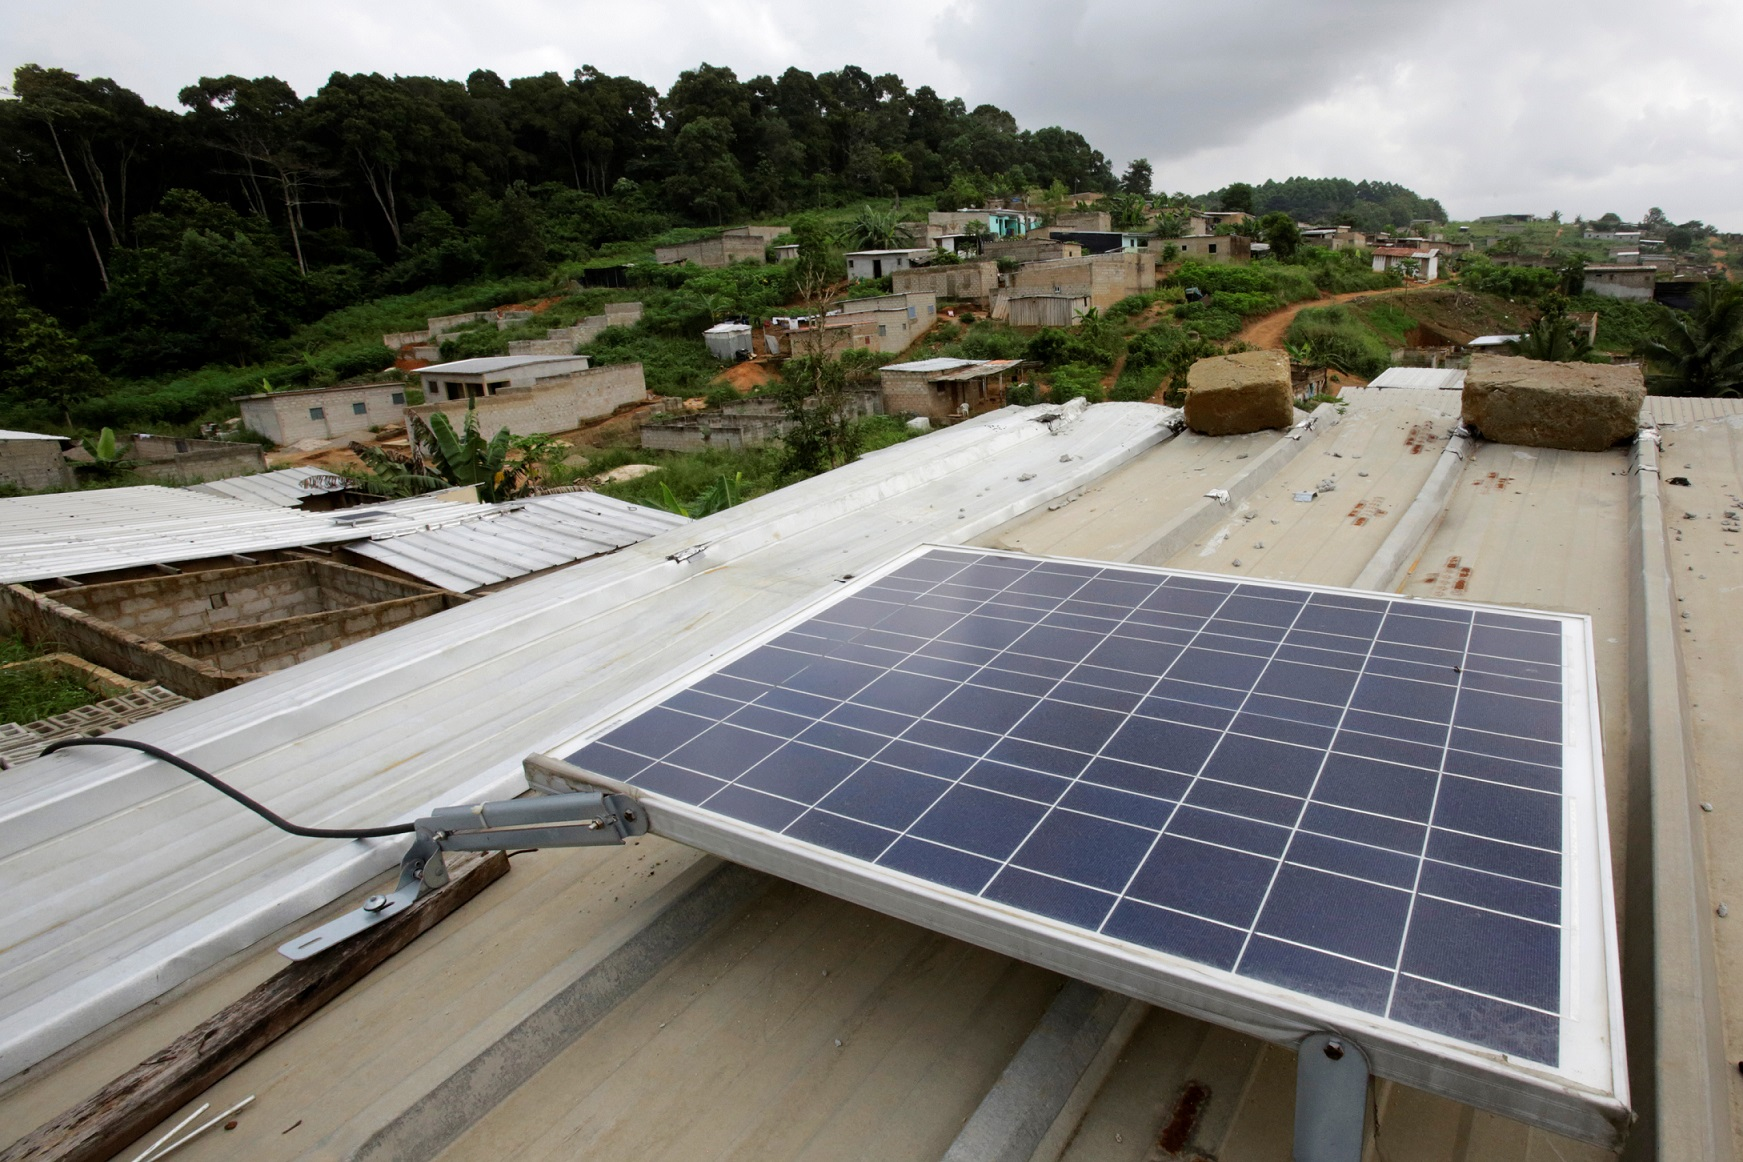 A solar panel is pictured on the roof of Jean-Noel Kouame's house, on the outer limits of the main city Abidjan's vast urban sprawl, Ivory Coast  December 18, 2017. Picture taken December 18, 2017. REUTERS/Thierry Gouegnon - RC1ECCAAF400